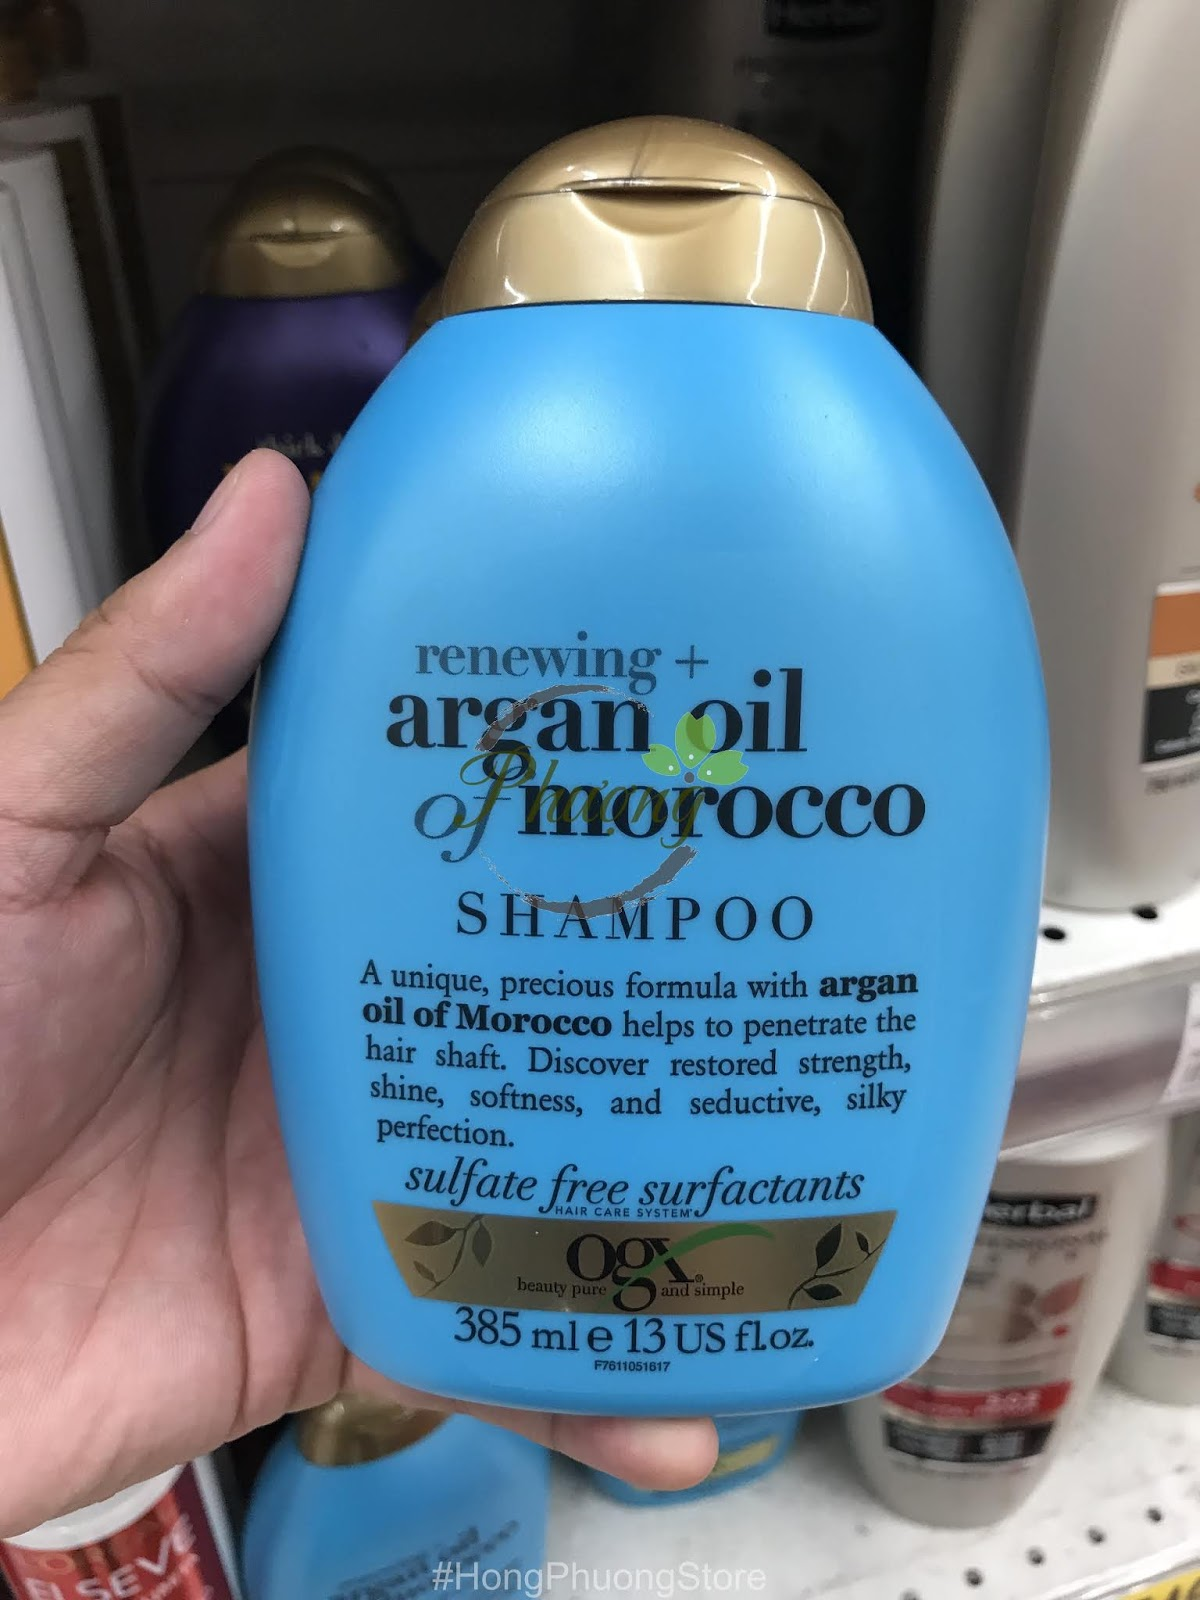 DẦU GỘI OGX RENEWING ARGAN OIL OF MORROCO SHAMPOO